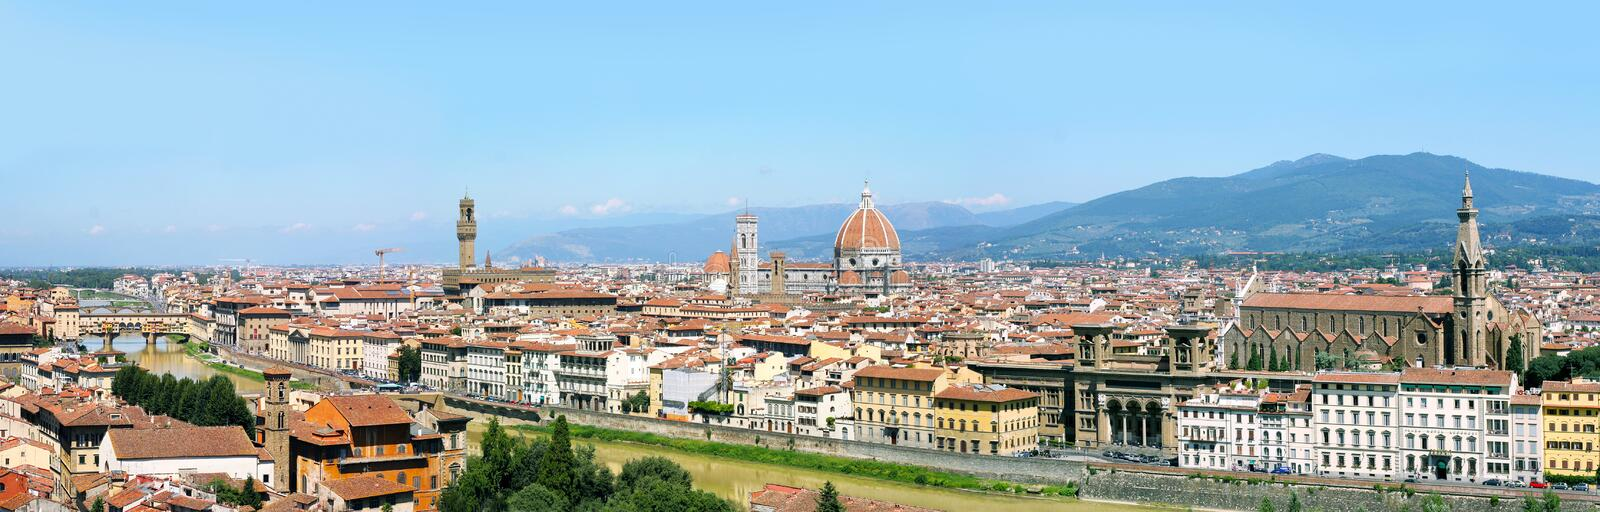 Full panorama of Florence stock photography